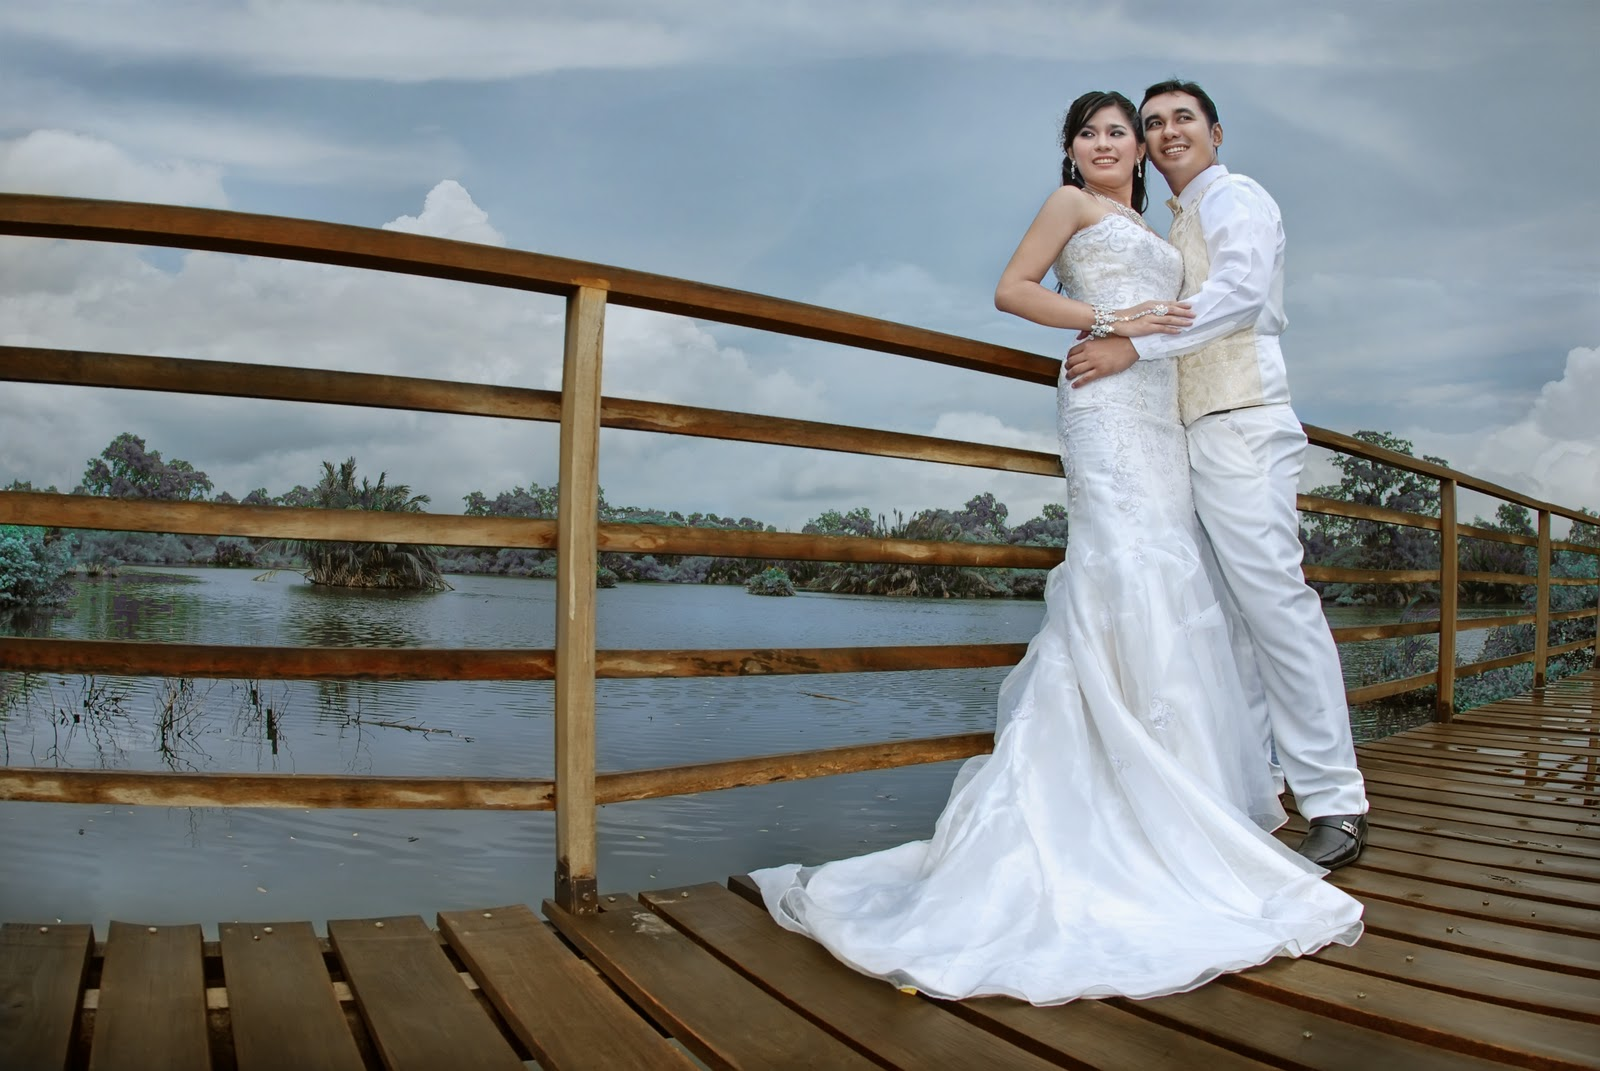 Editing Album: Contoh Album Kolase Pre Wedding